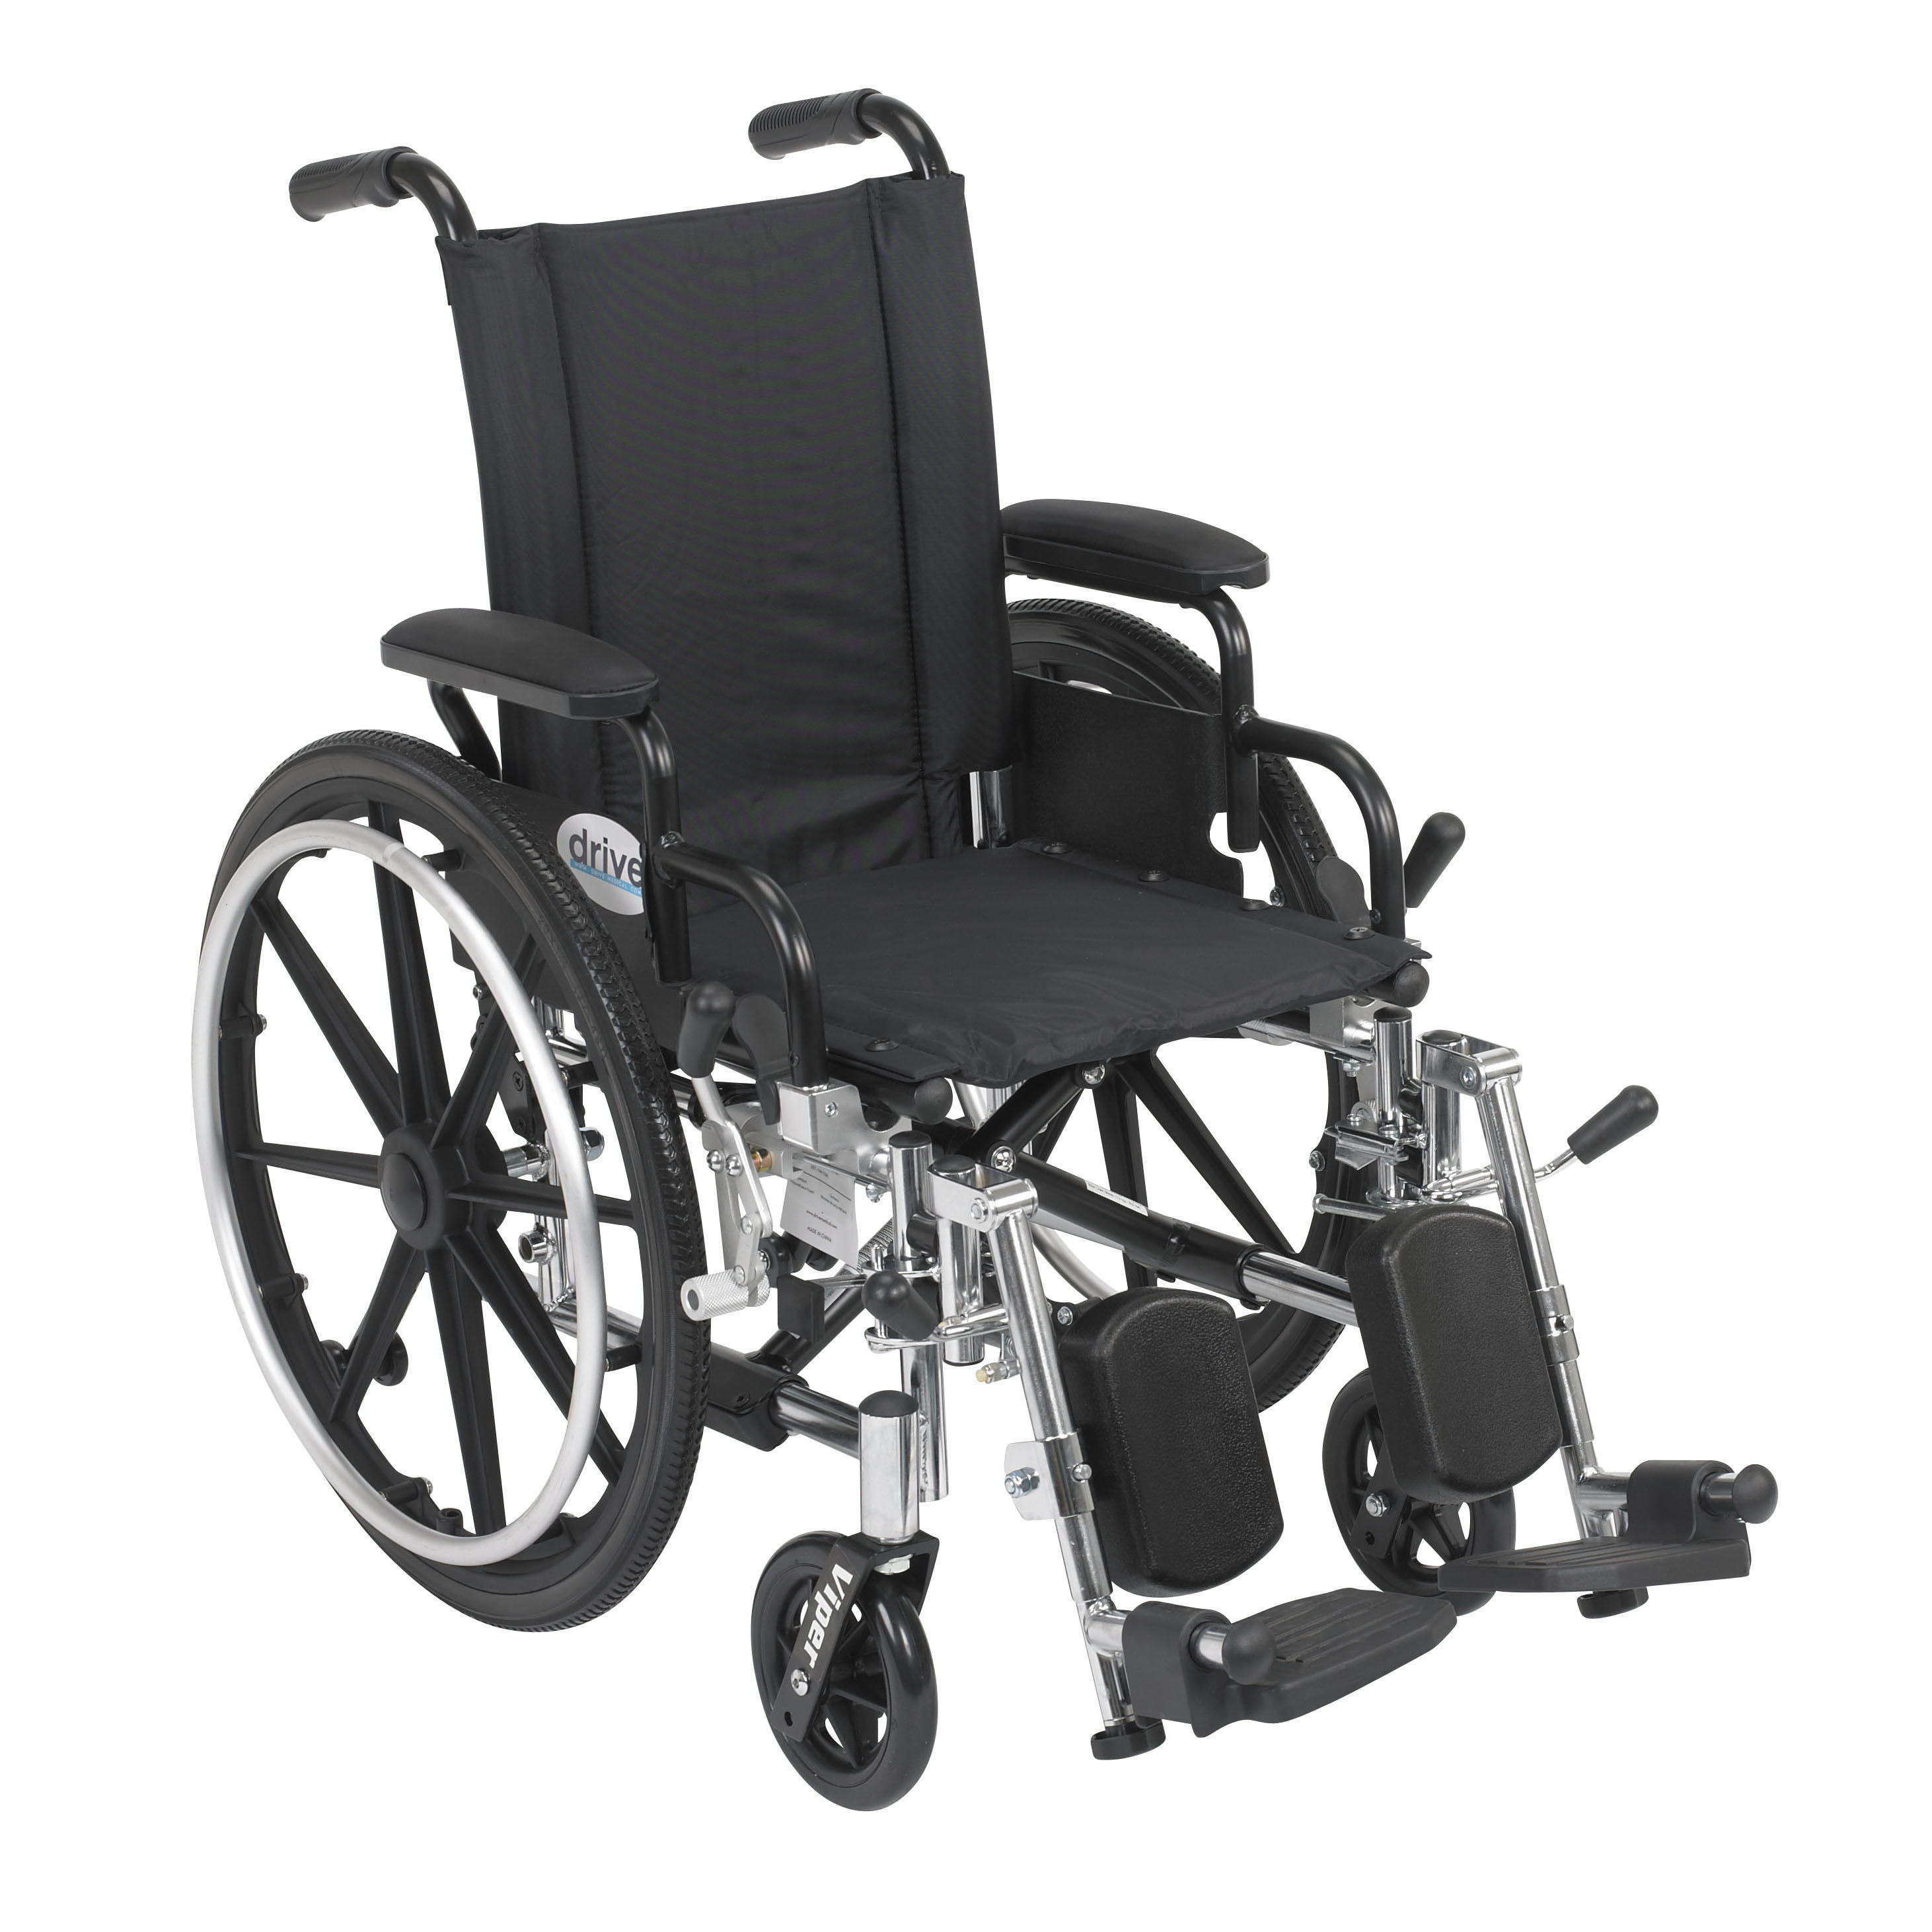 Viper Wheelchair with Flip-back Desk Arms Front Riggings and Adjustable Back Height